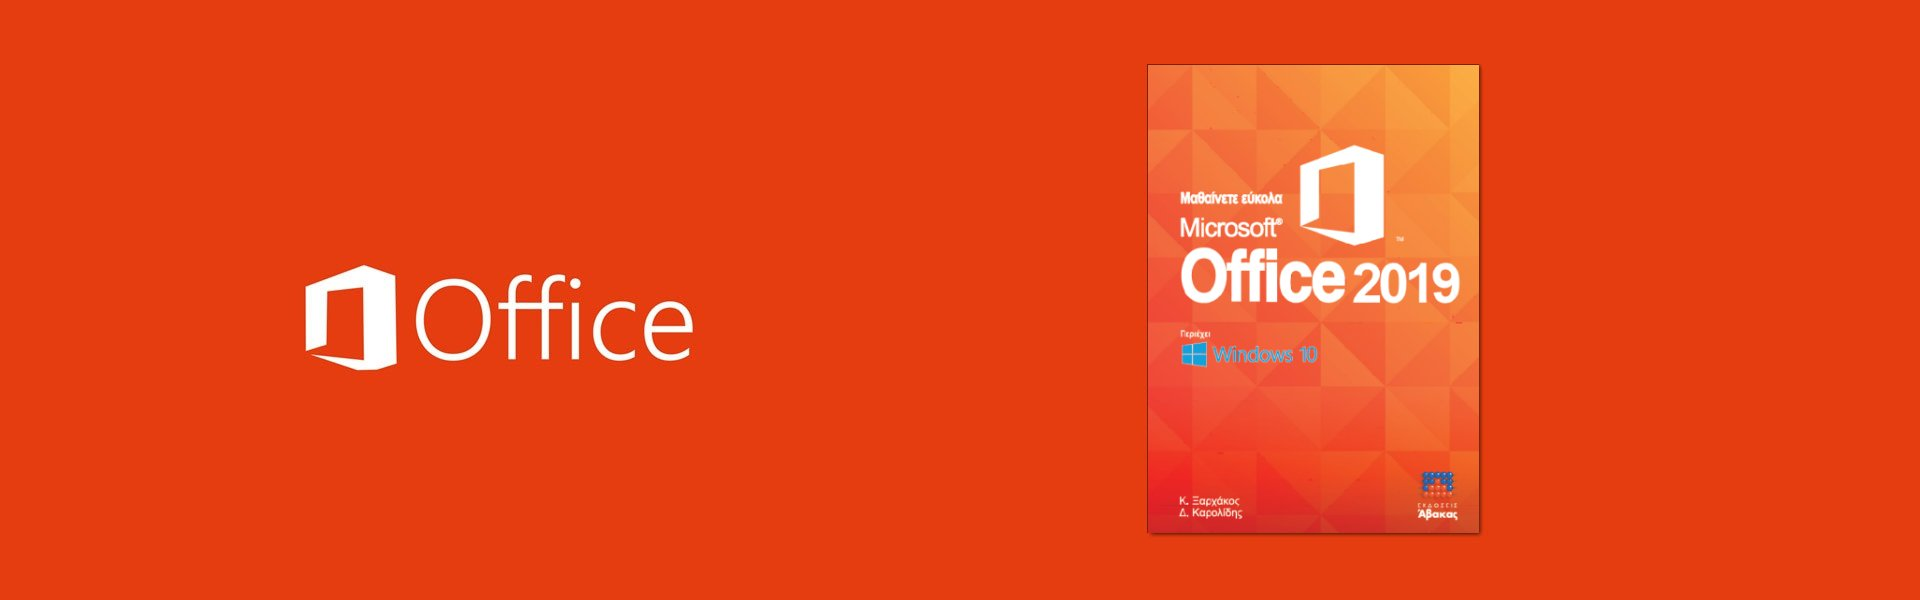 Easy learning Microsoft Office 2016